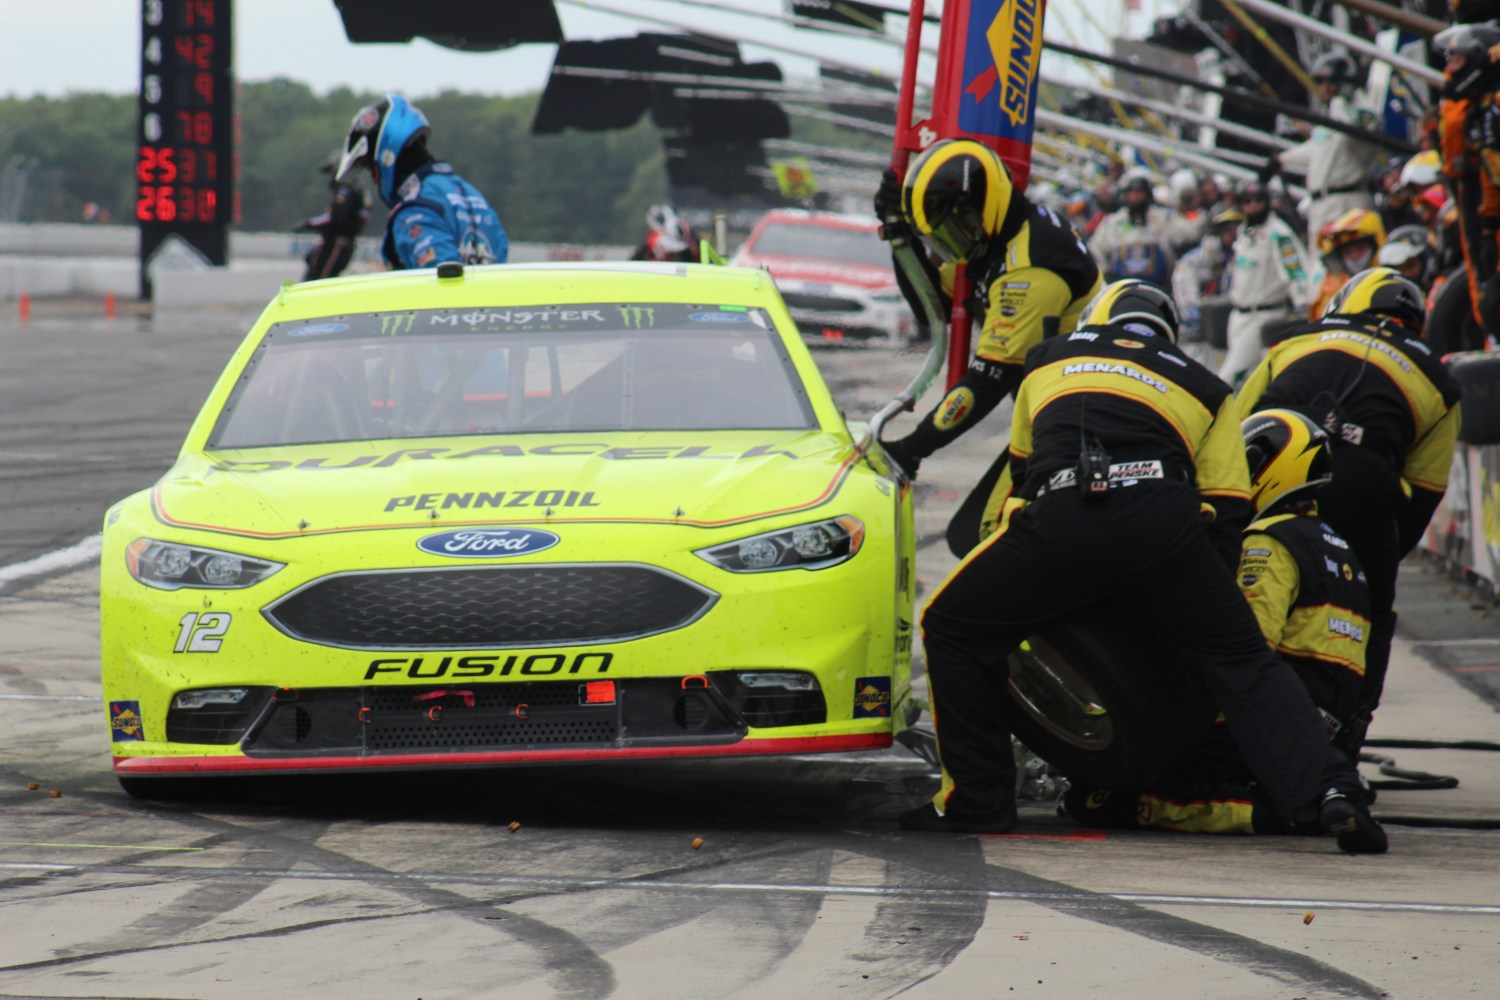 Ryan Blaney's car receives service during the 2018 Pocono 400. (Tyler Head | The Racing Experts)